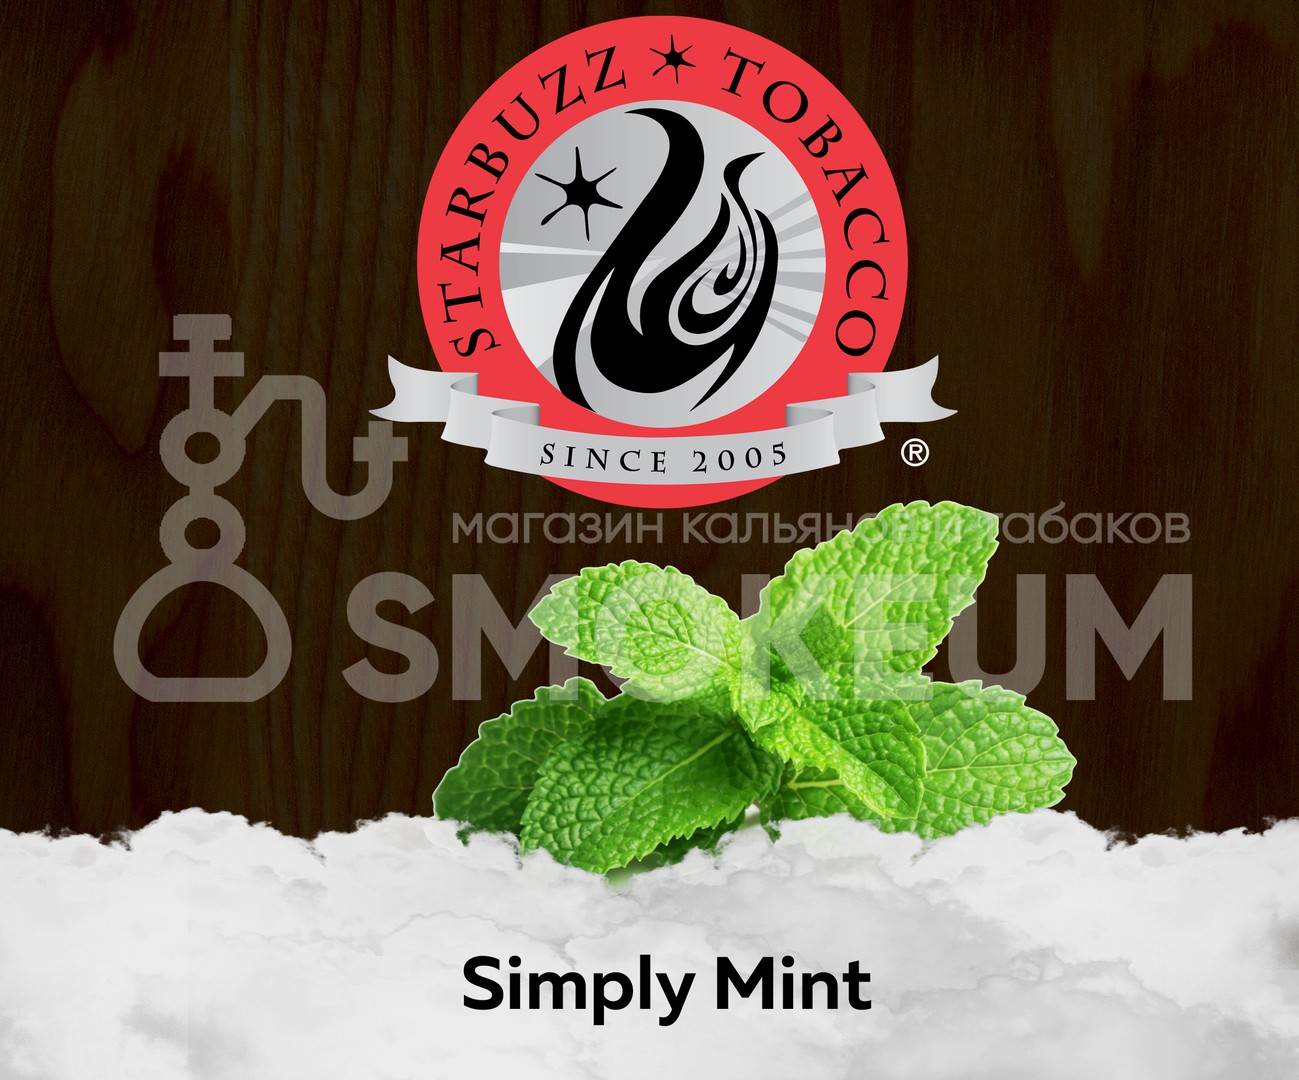 Табак Starbuzz - Simply Mint (Мята) 250 гр